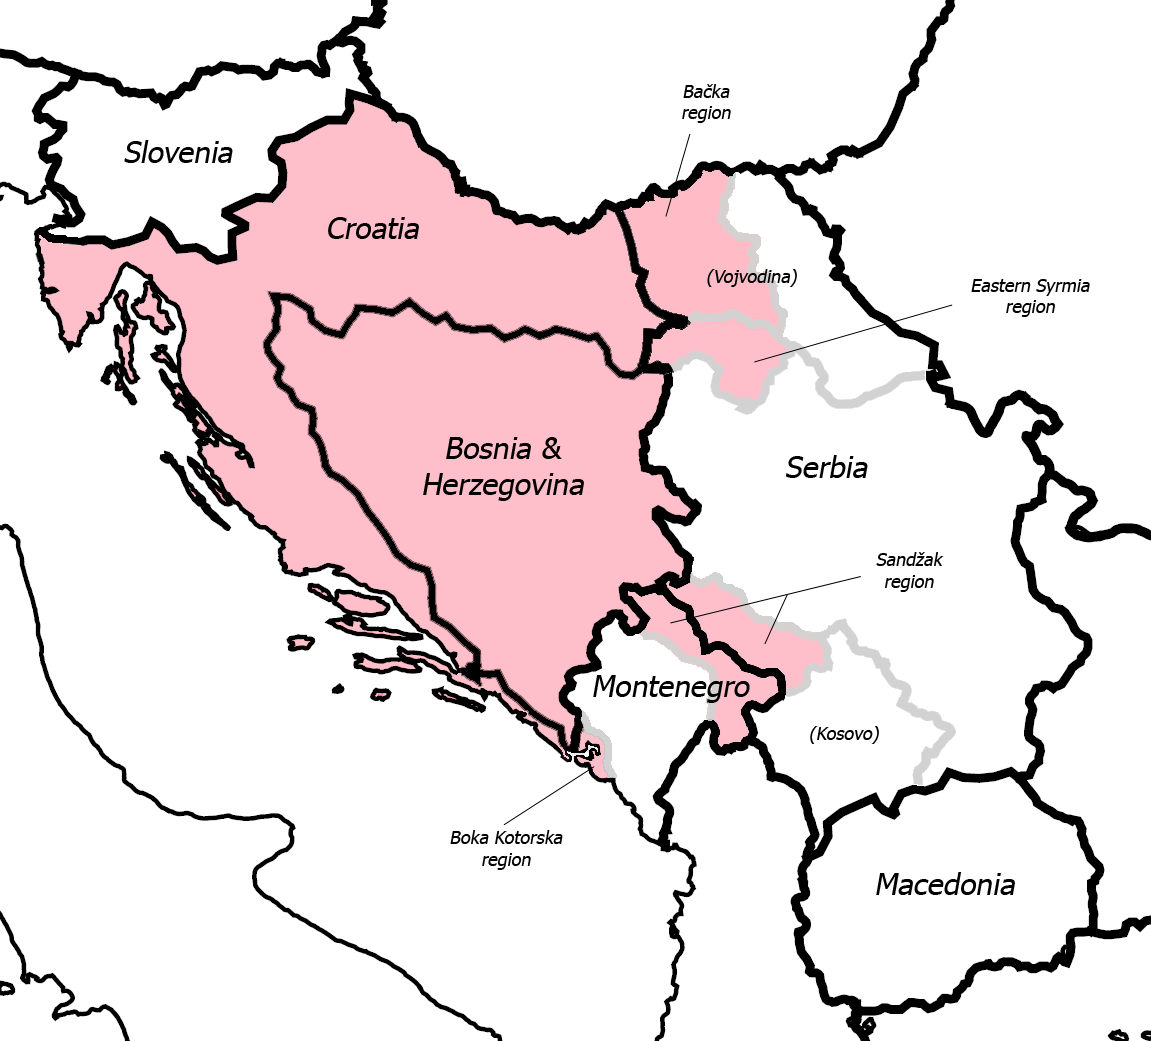 Greater Croatia of Croat Illyrians